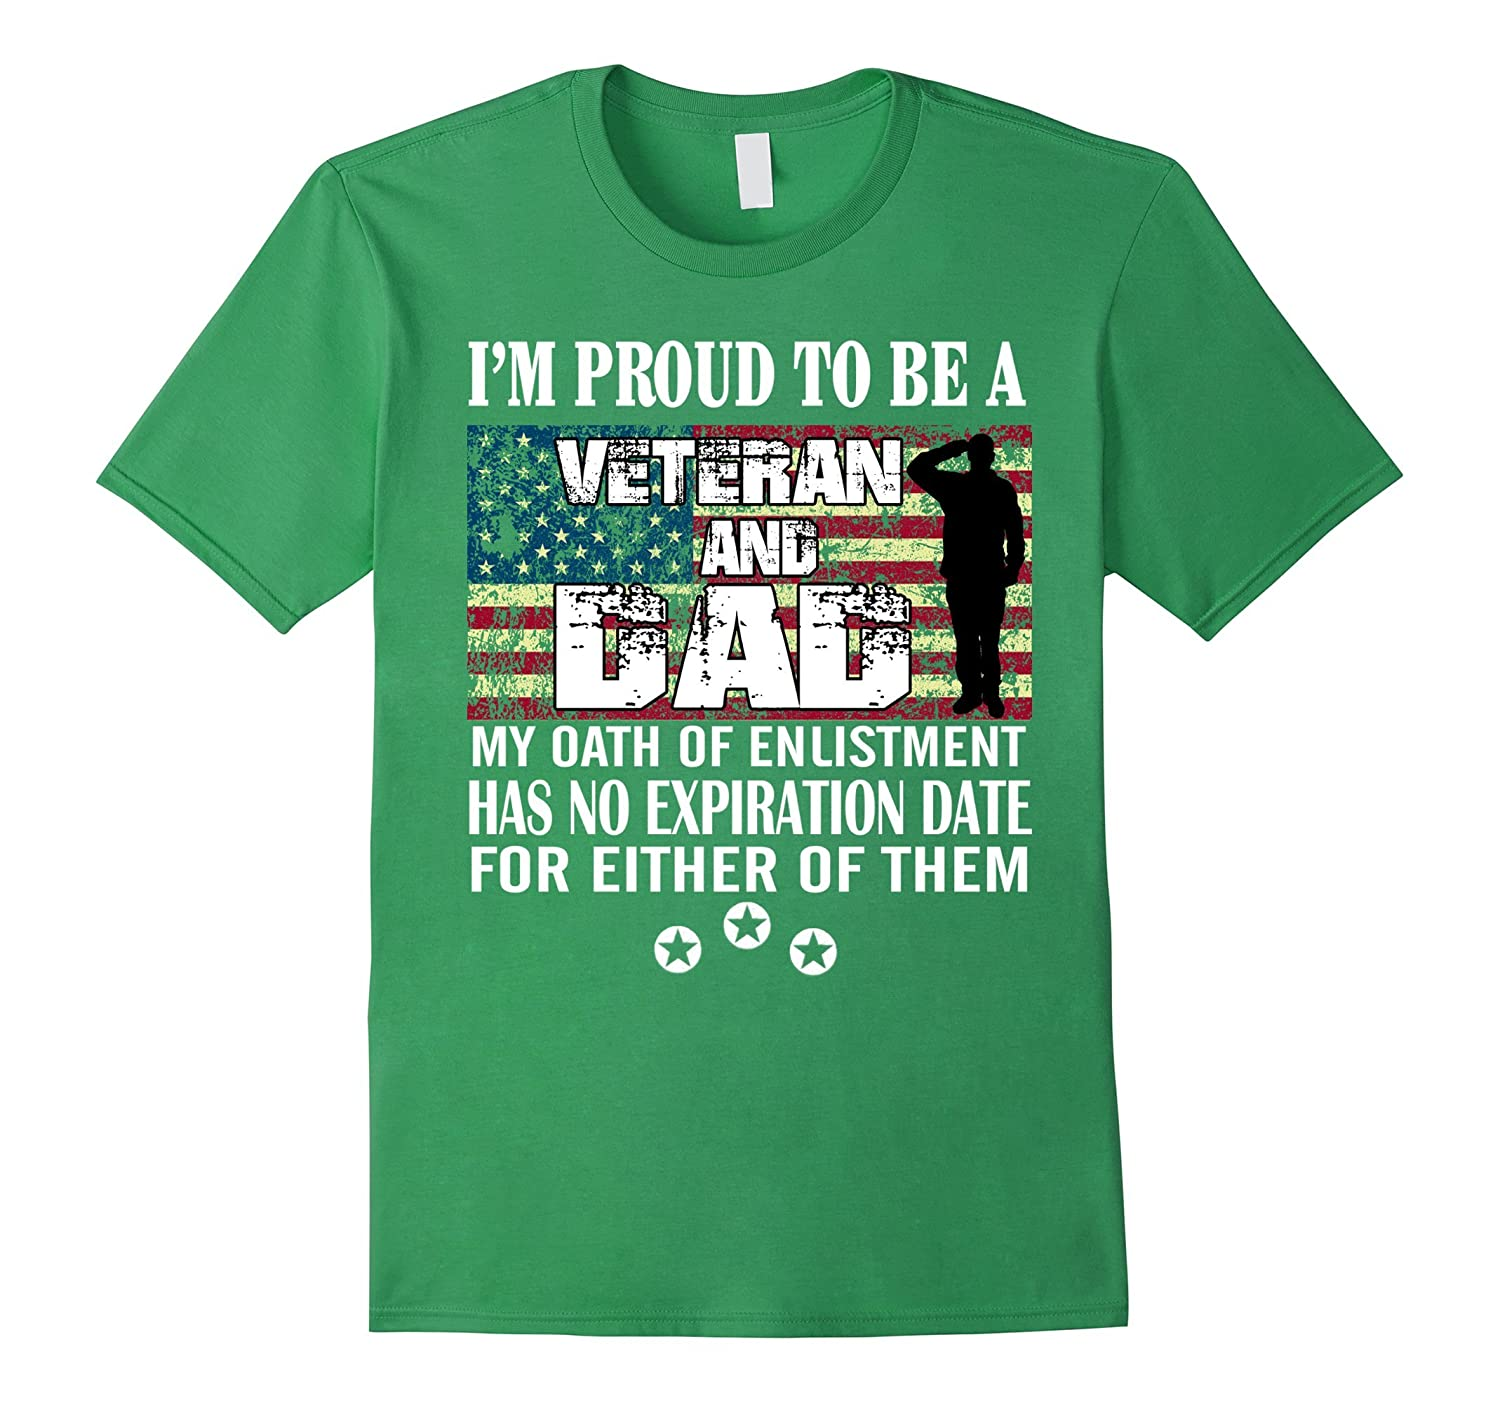 IM PROUD TO BE A VETERAN AND DAD-Vaci